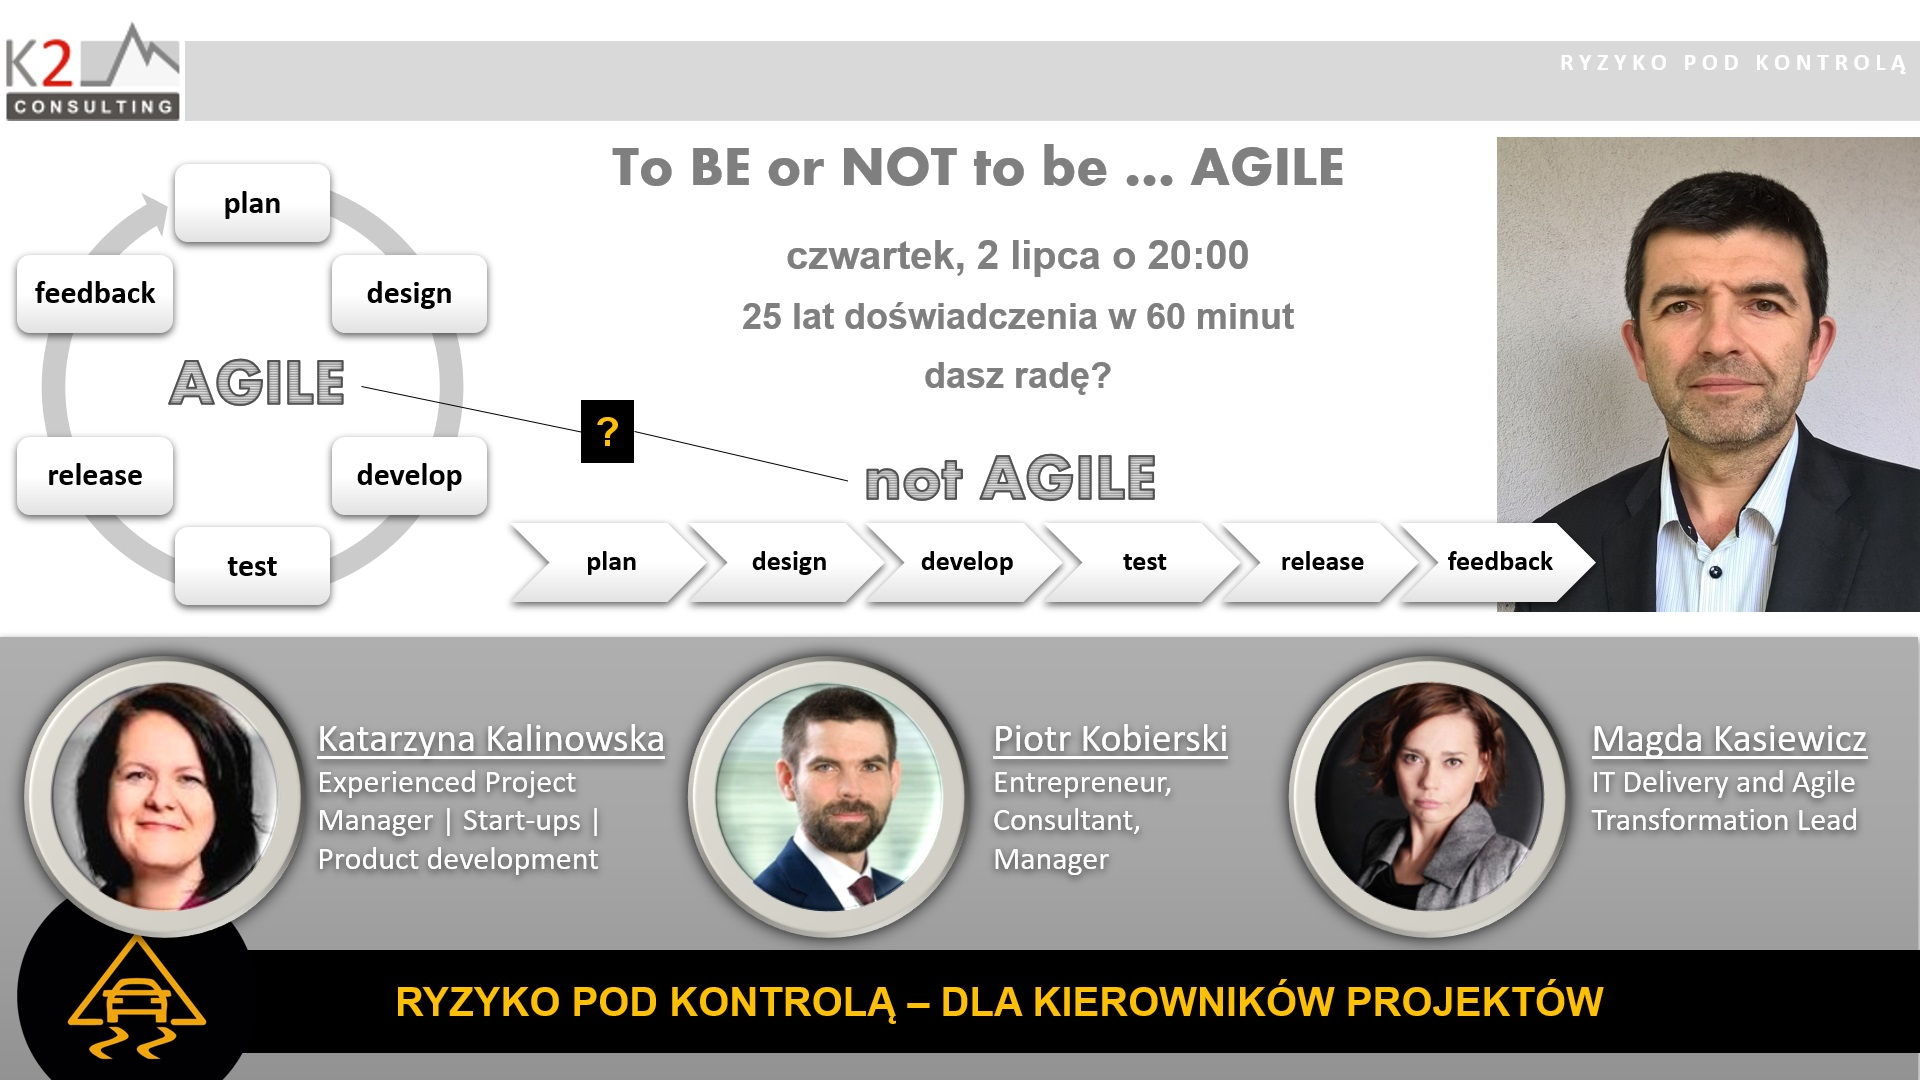 to BE or NOT to be AGILE